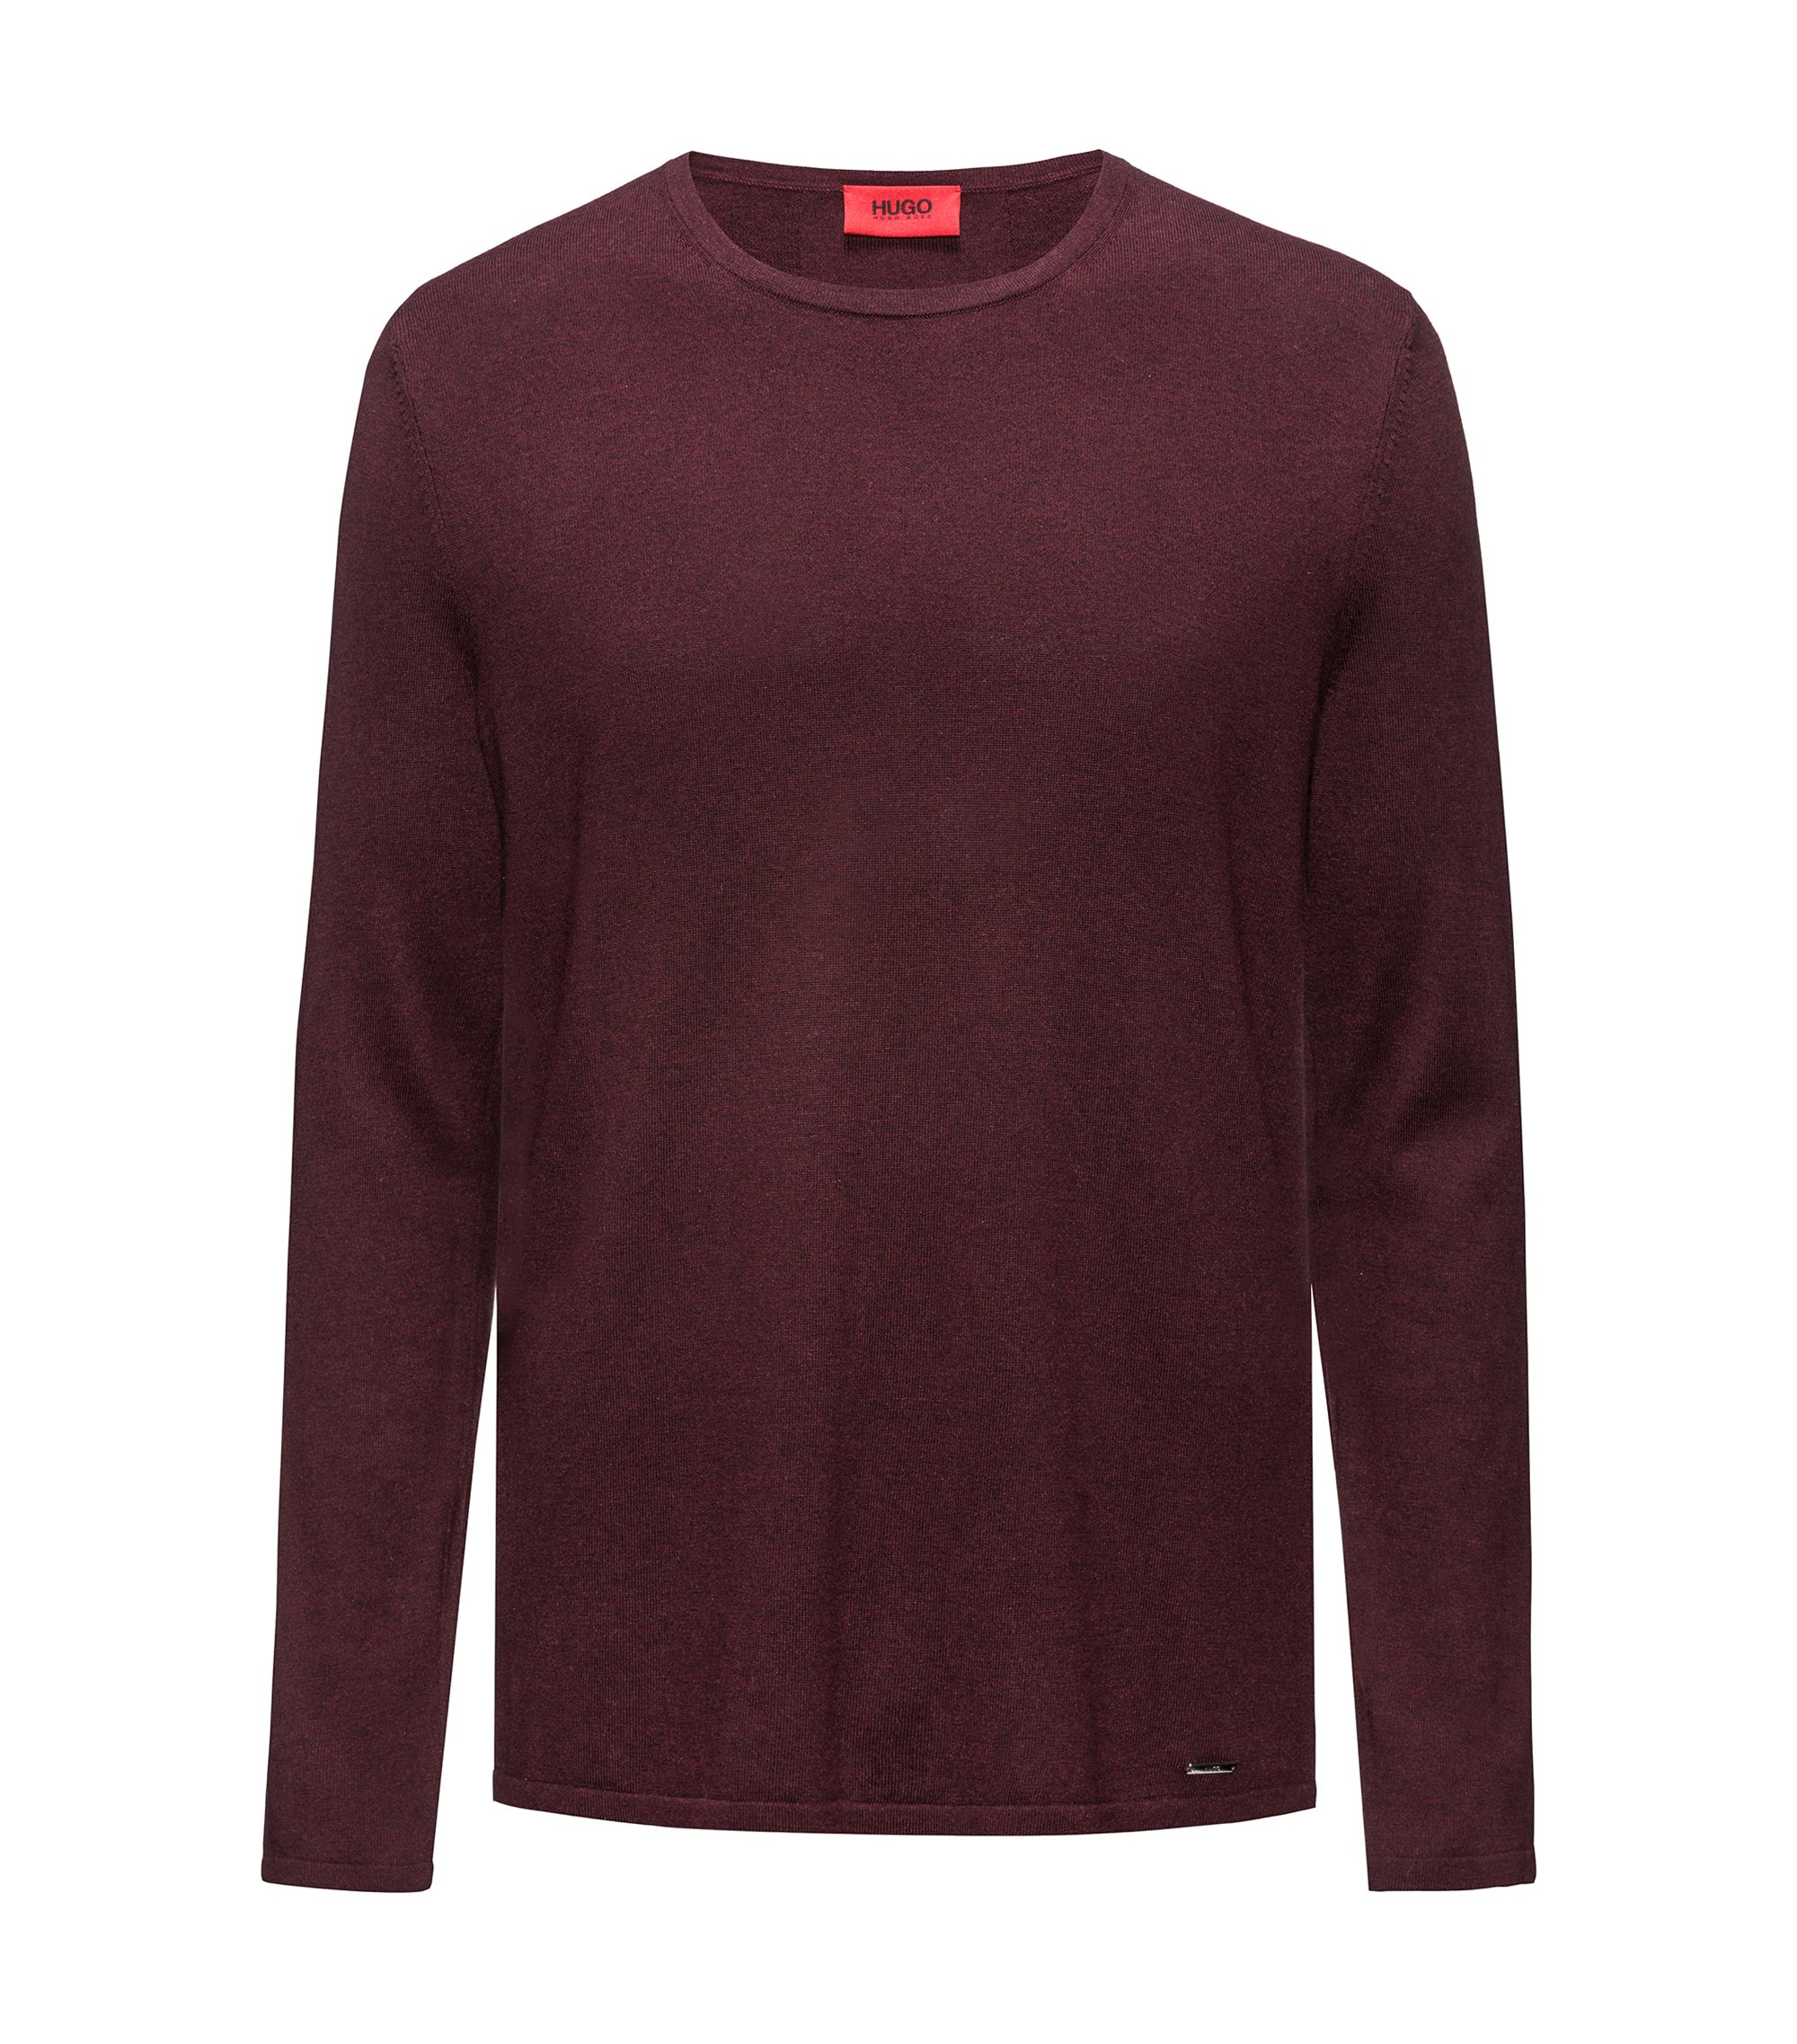 Cotton Blend Sweater | San Bastio, Dark Red